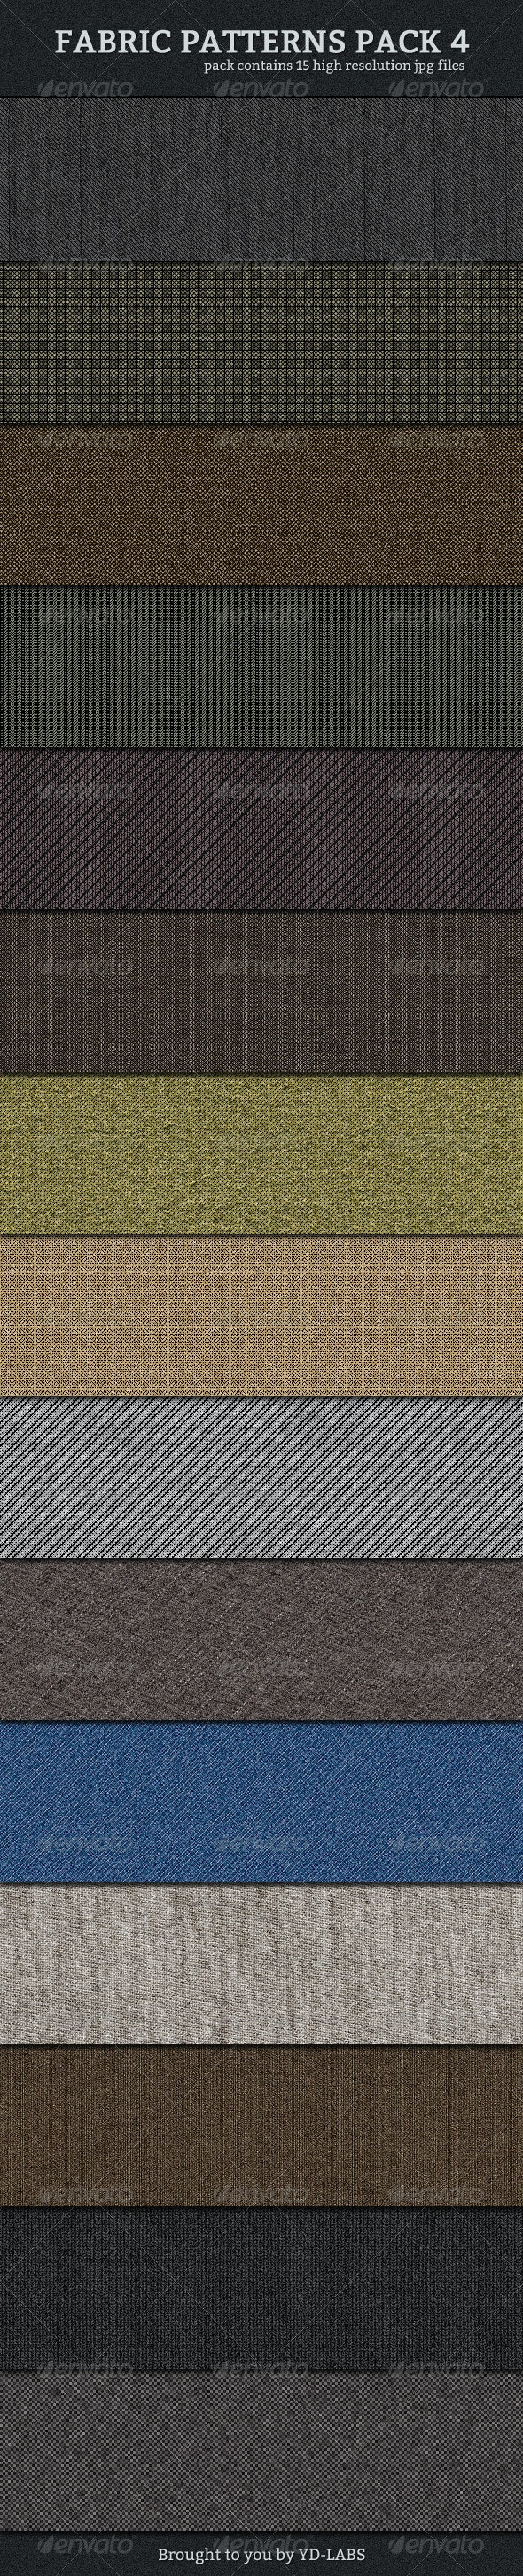 Fabric Pack 4 - Fabric Textures